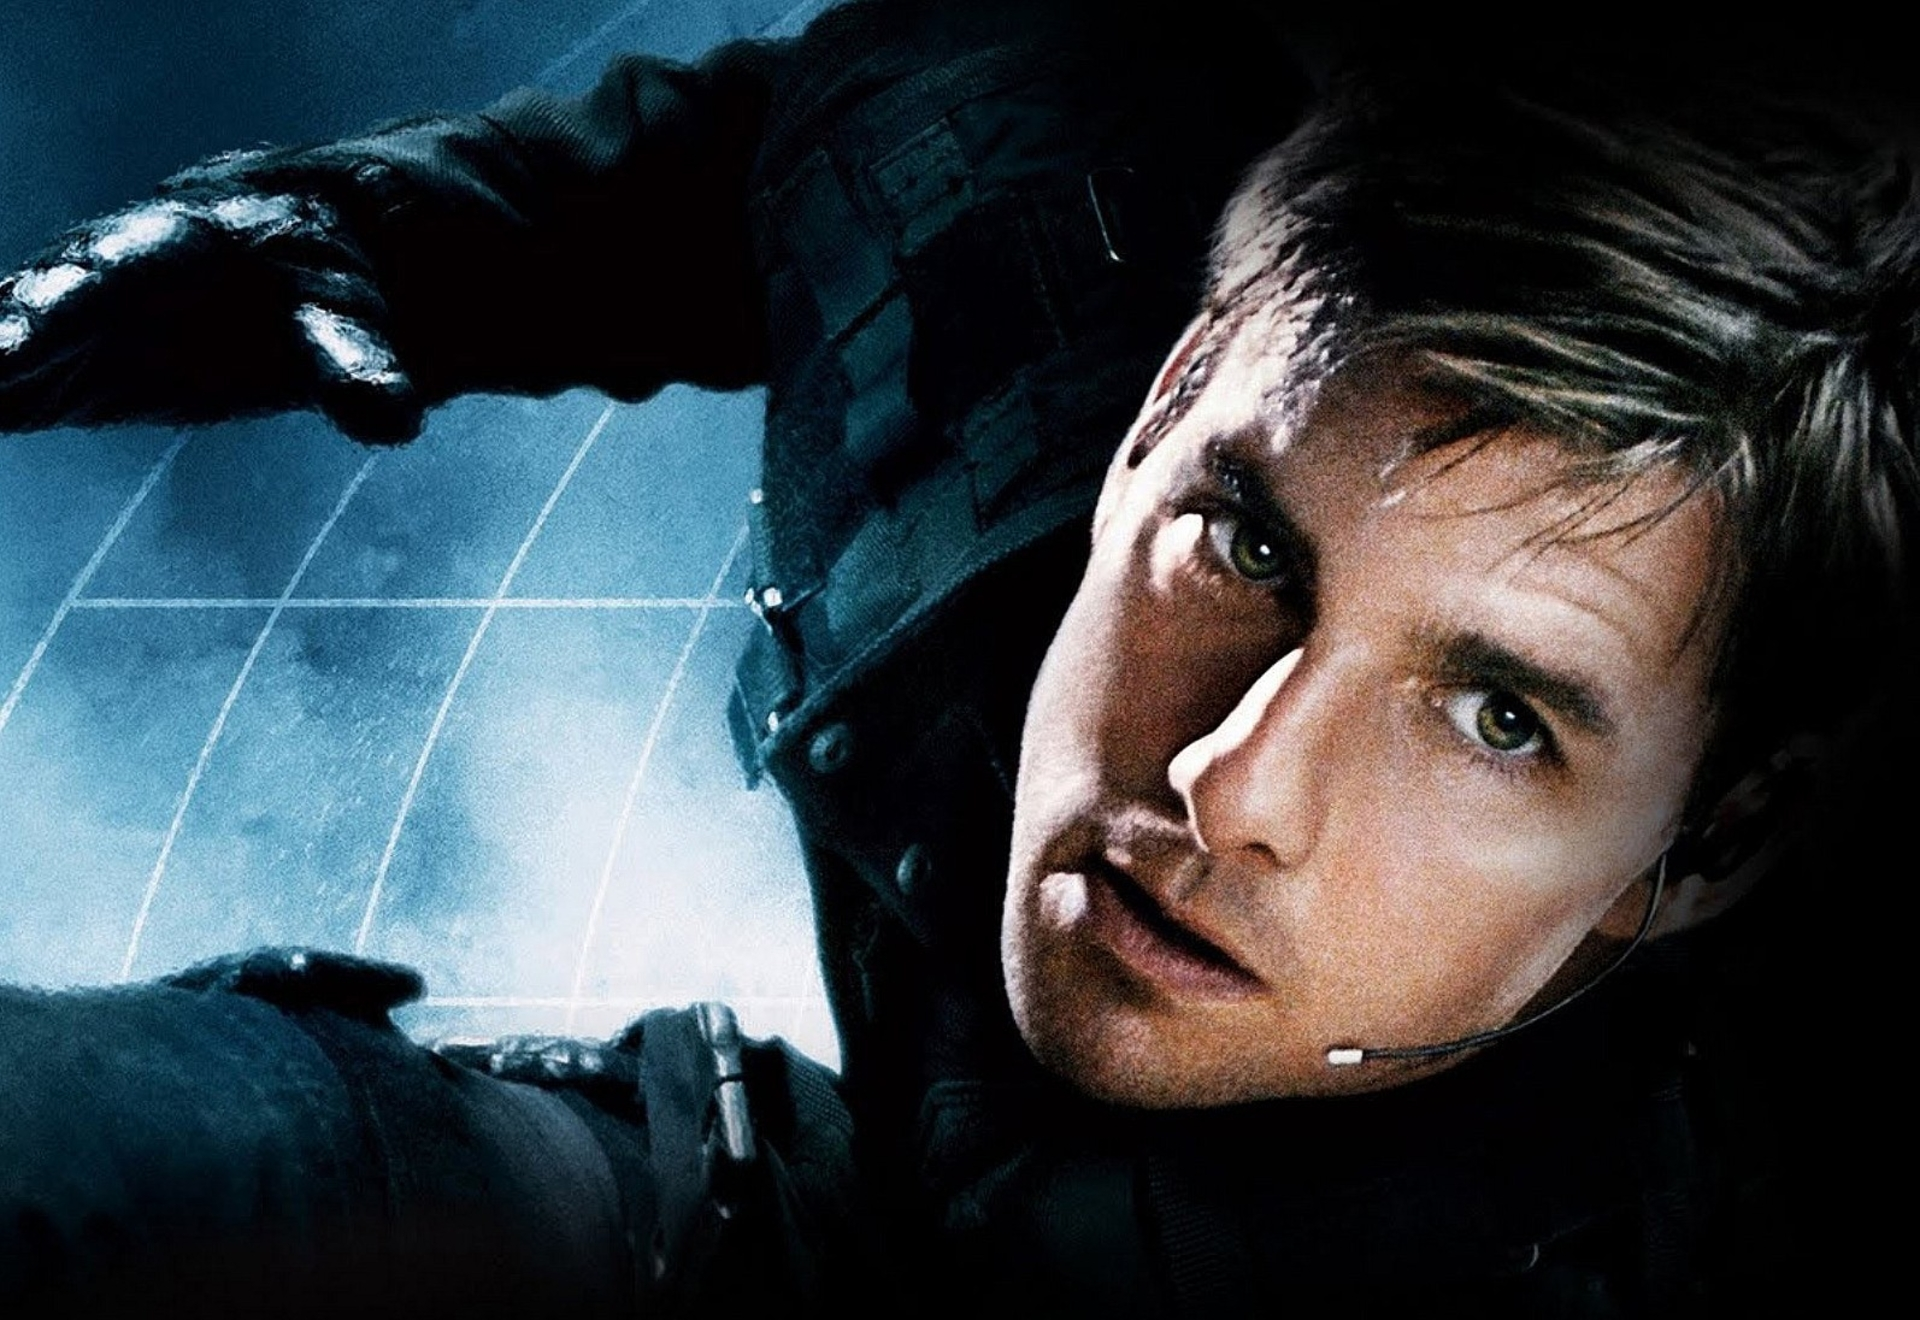 Tom Cruise Wallpapers High Resolution And Quality